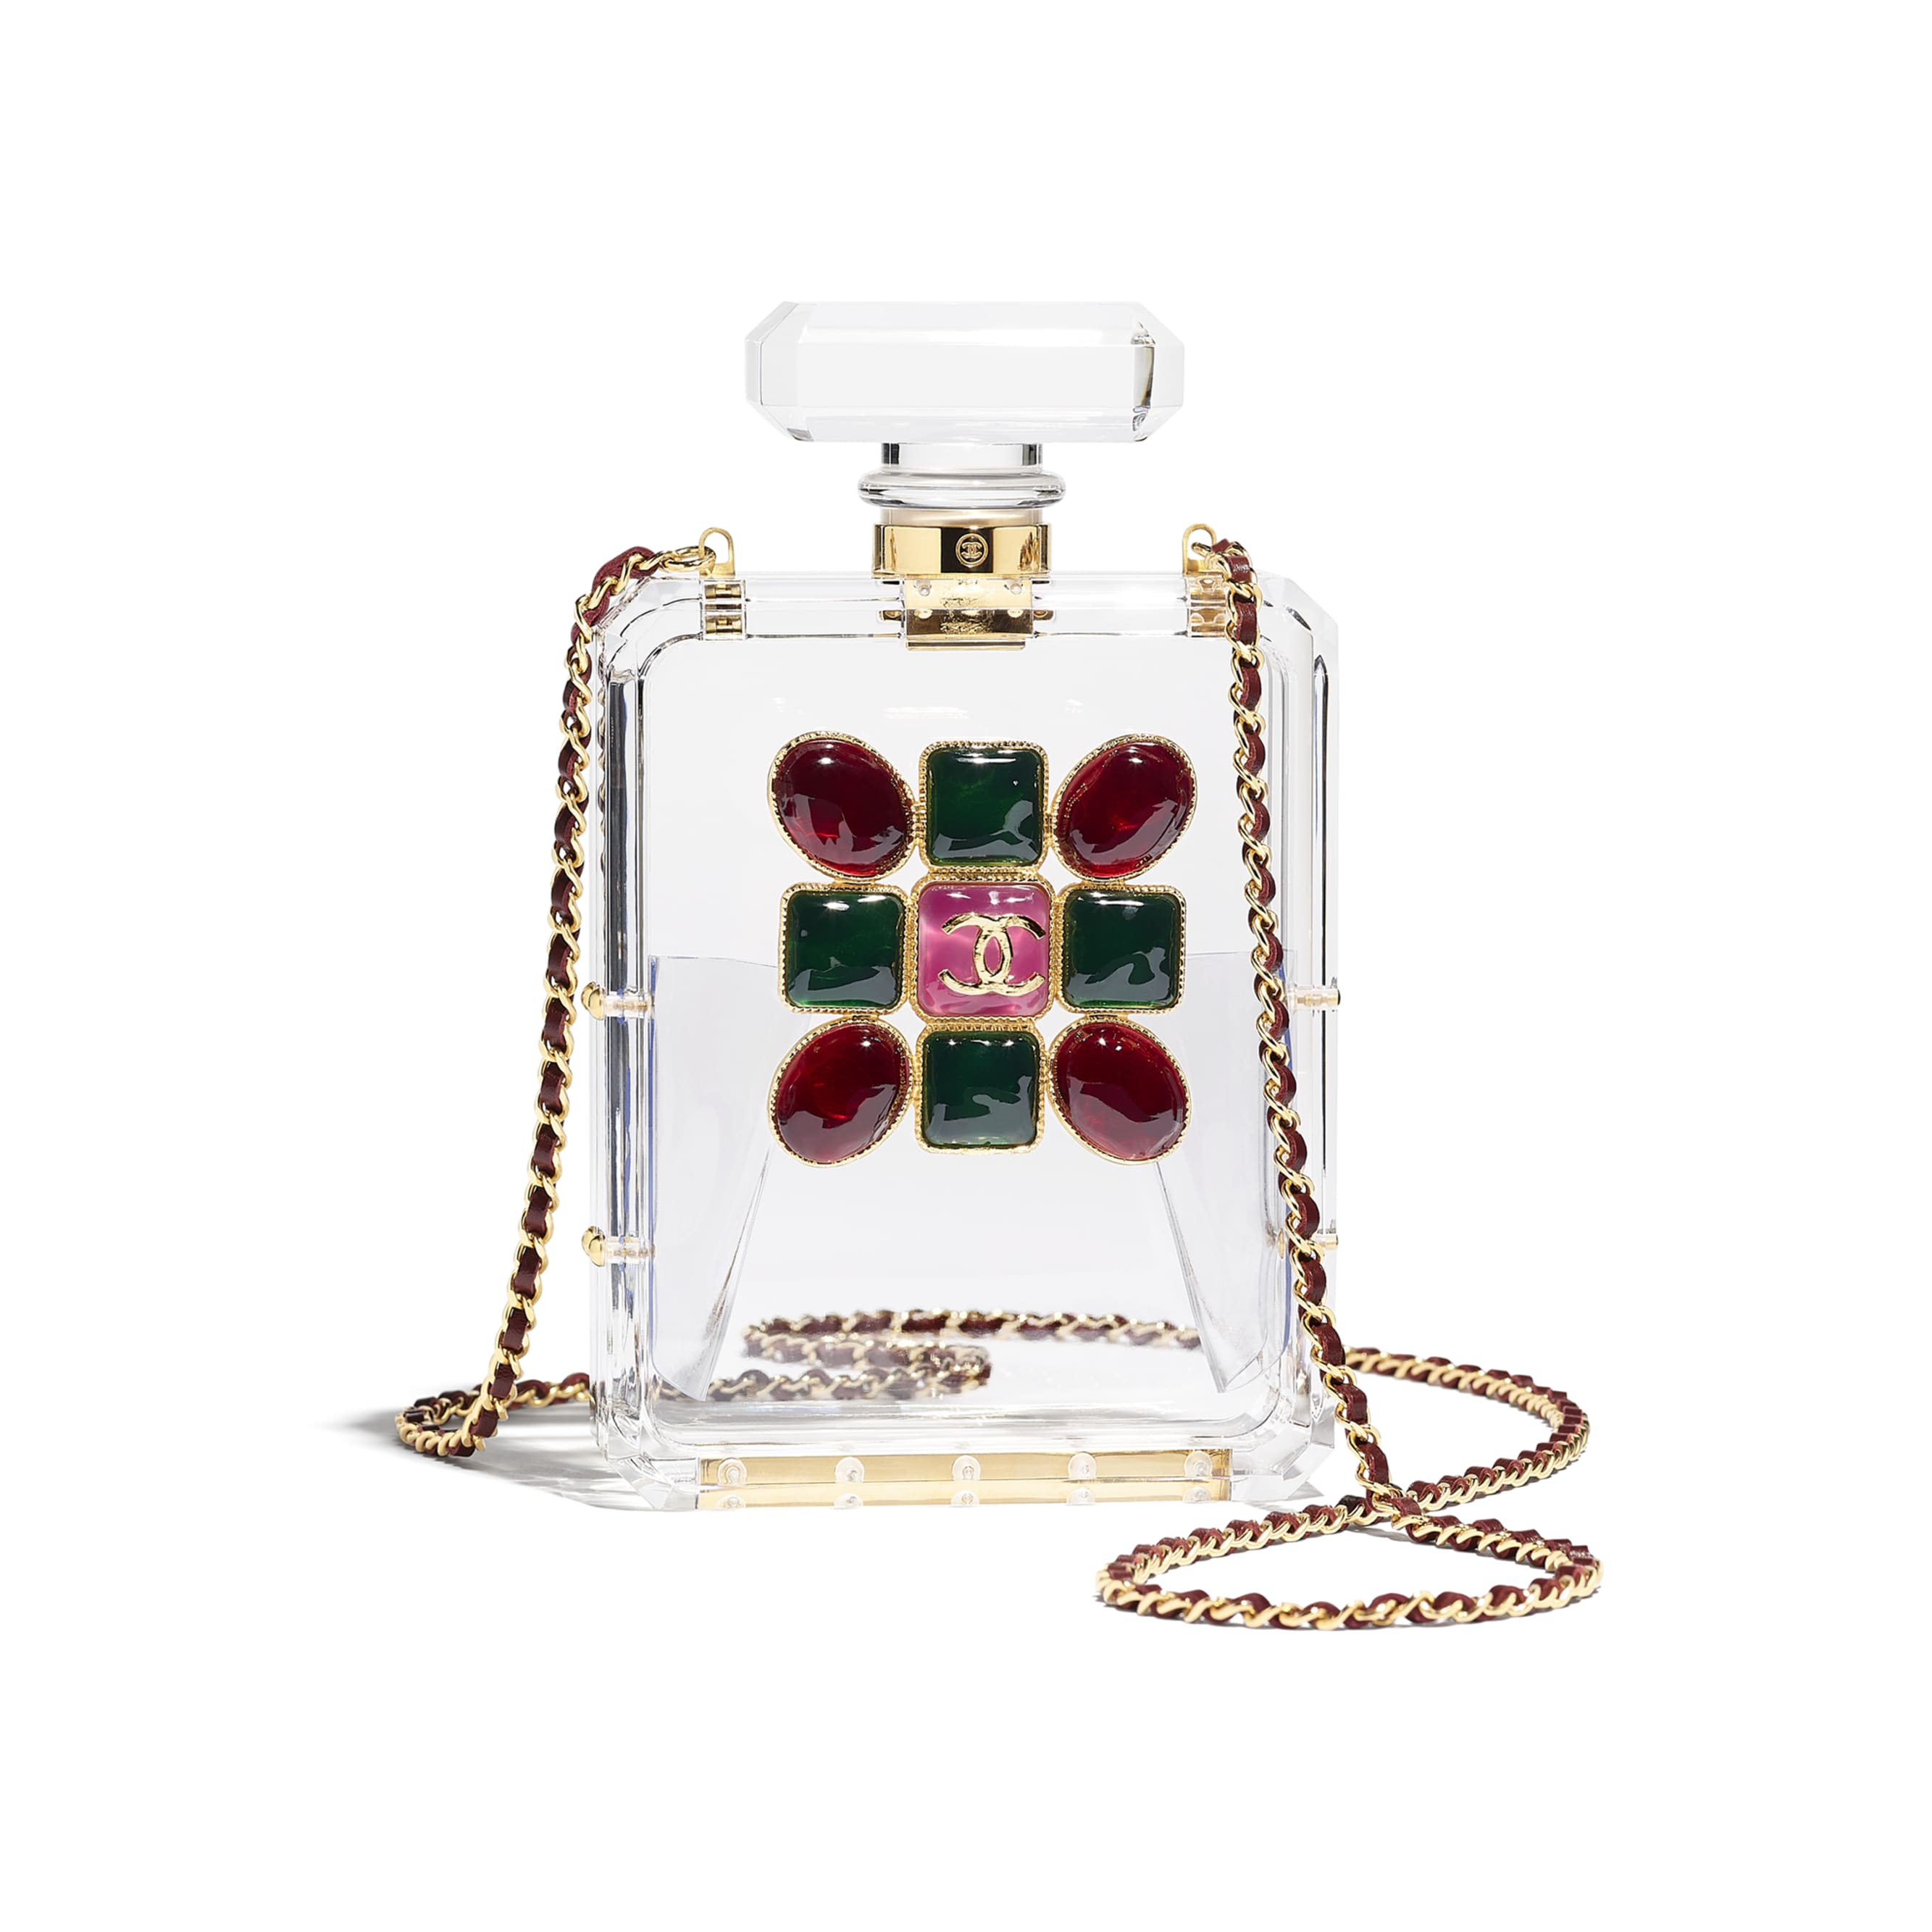 Evening Bag - Transparent, Red & Green - Resin, Enamel & Gold-Tone Metal - CHANEL - Default view - see standard sized version